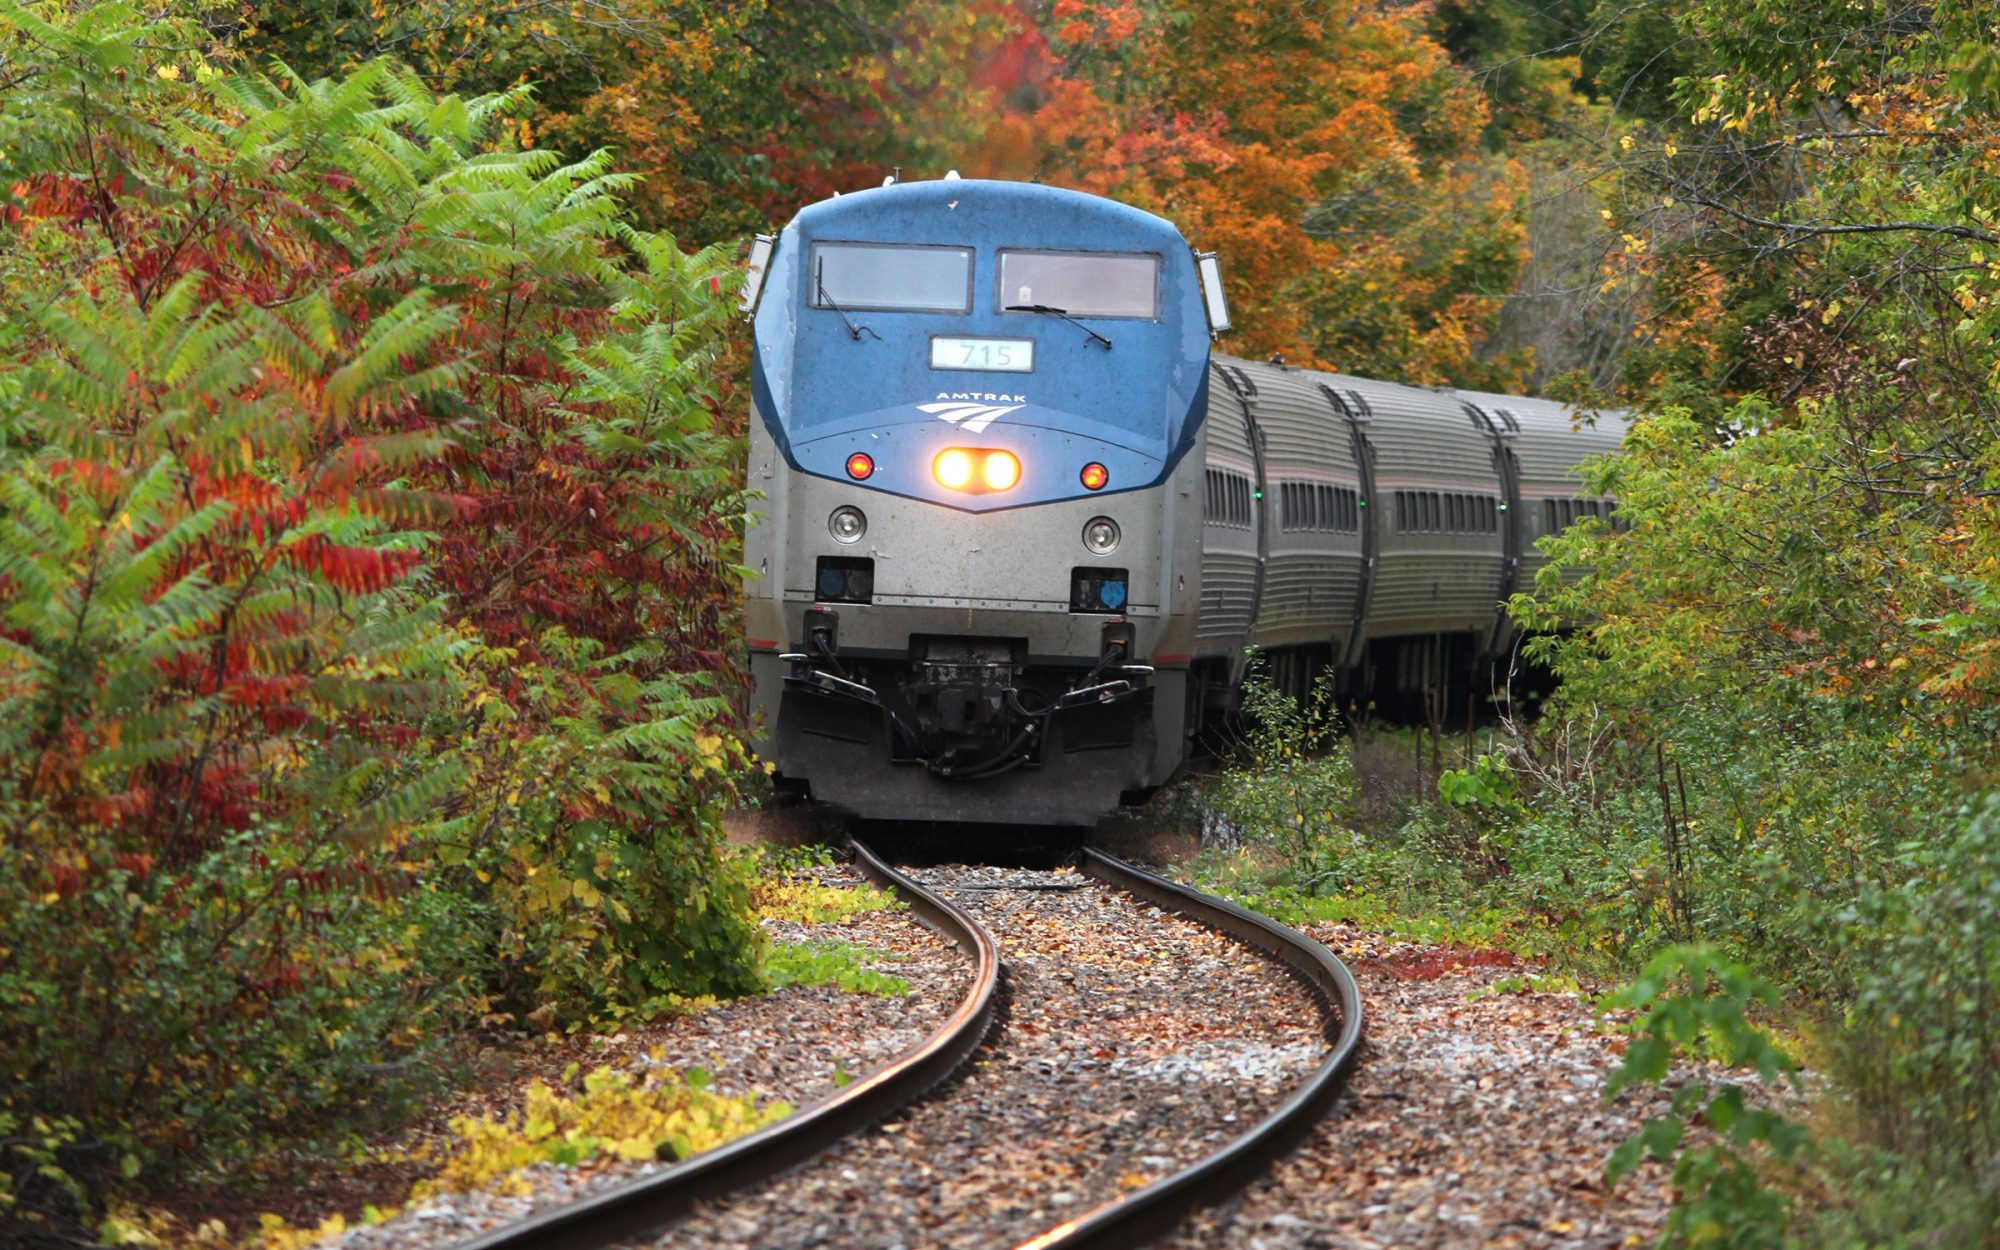 Buy Your Tickets Now for the Amtrak Autumn Express